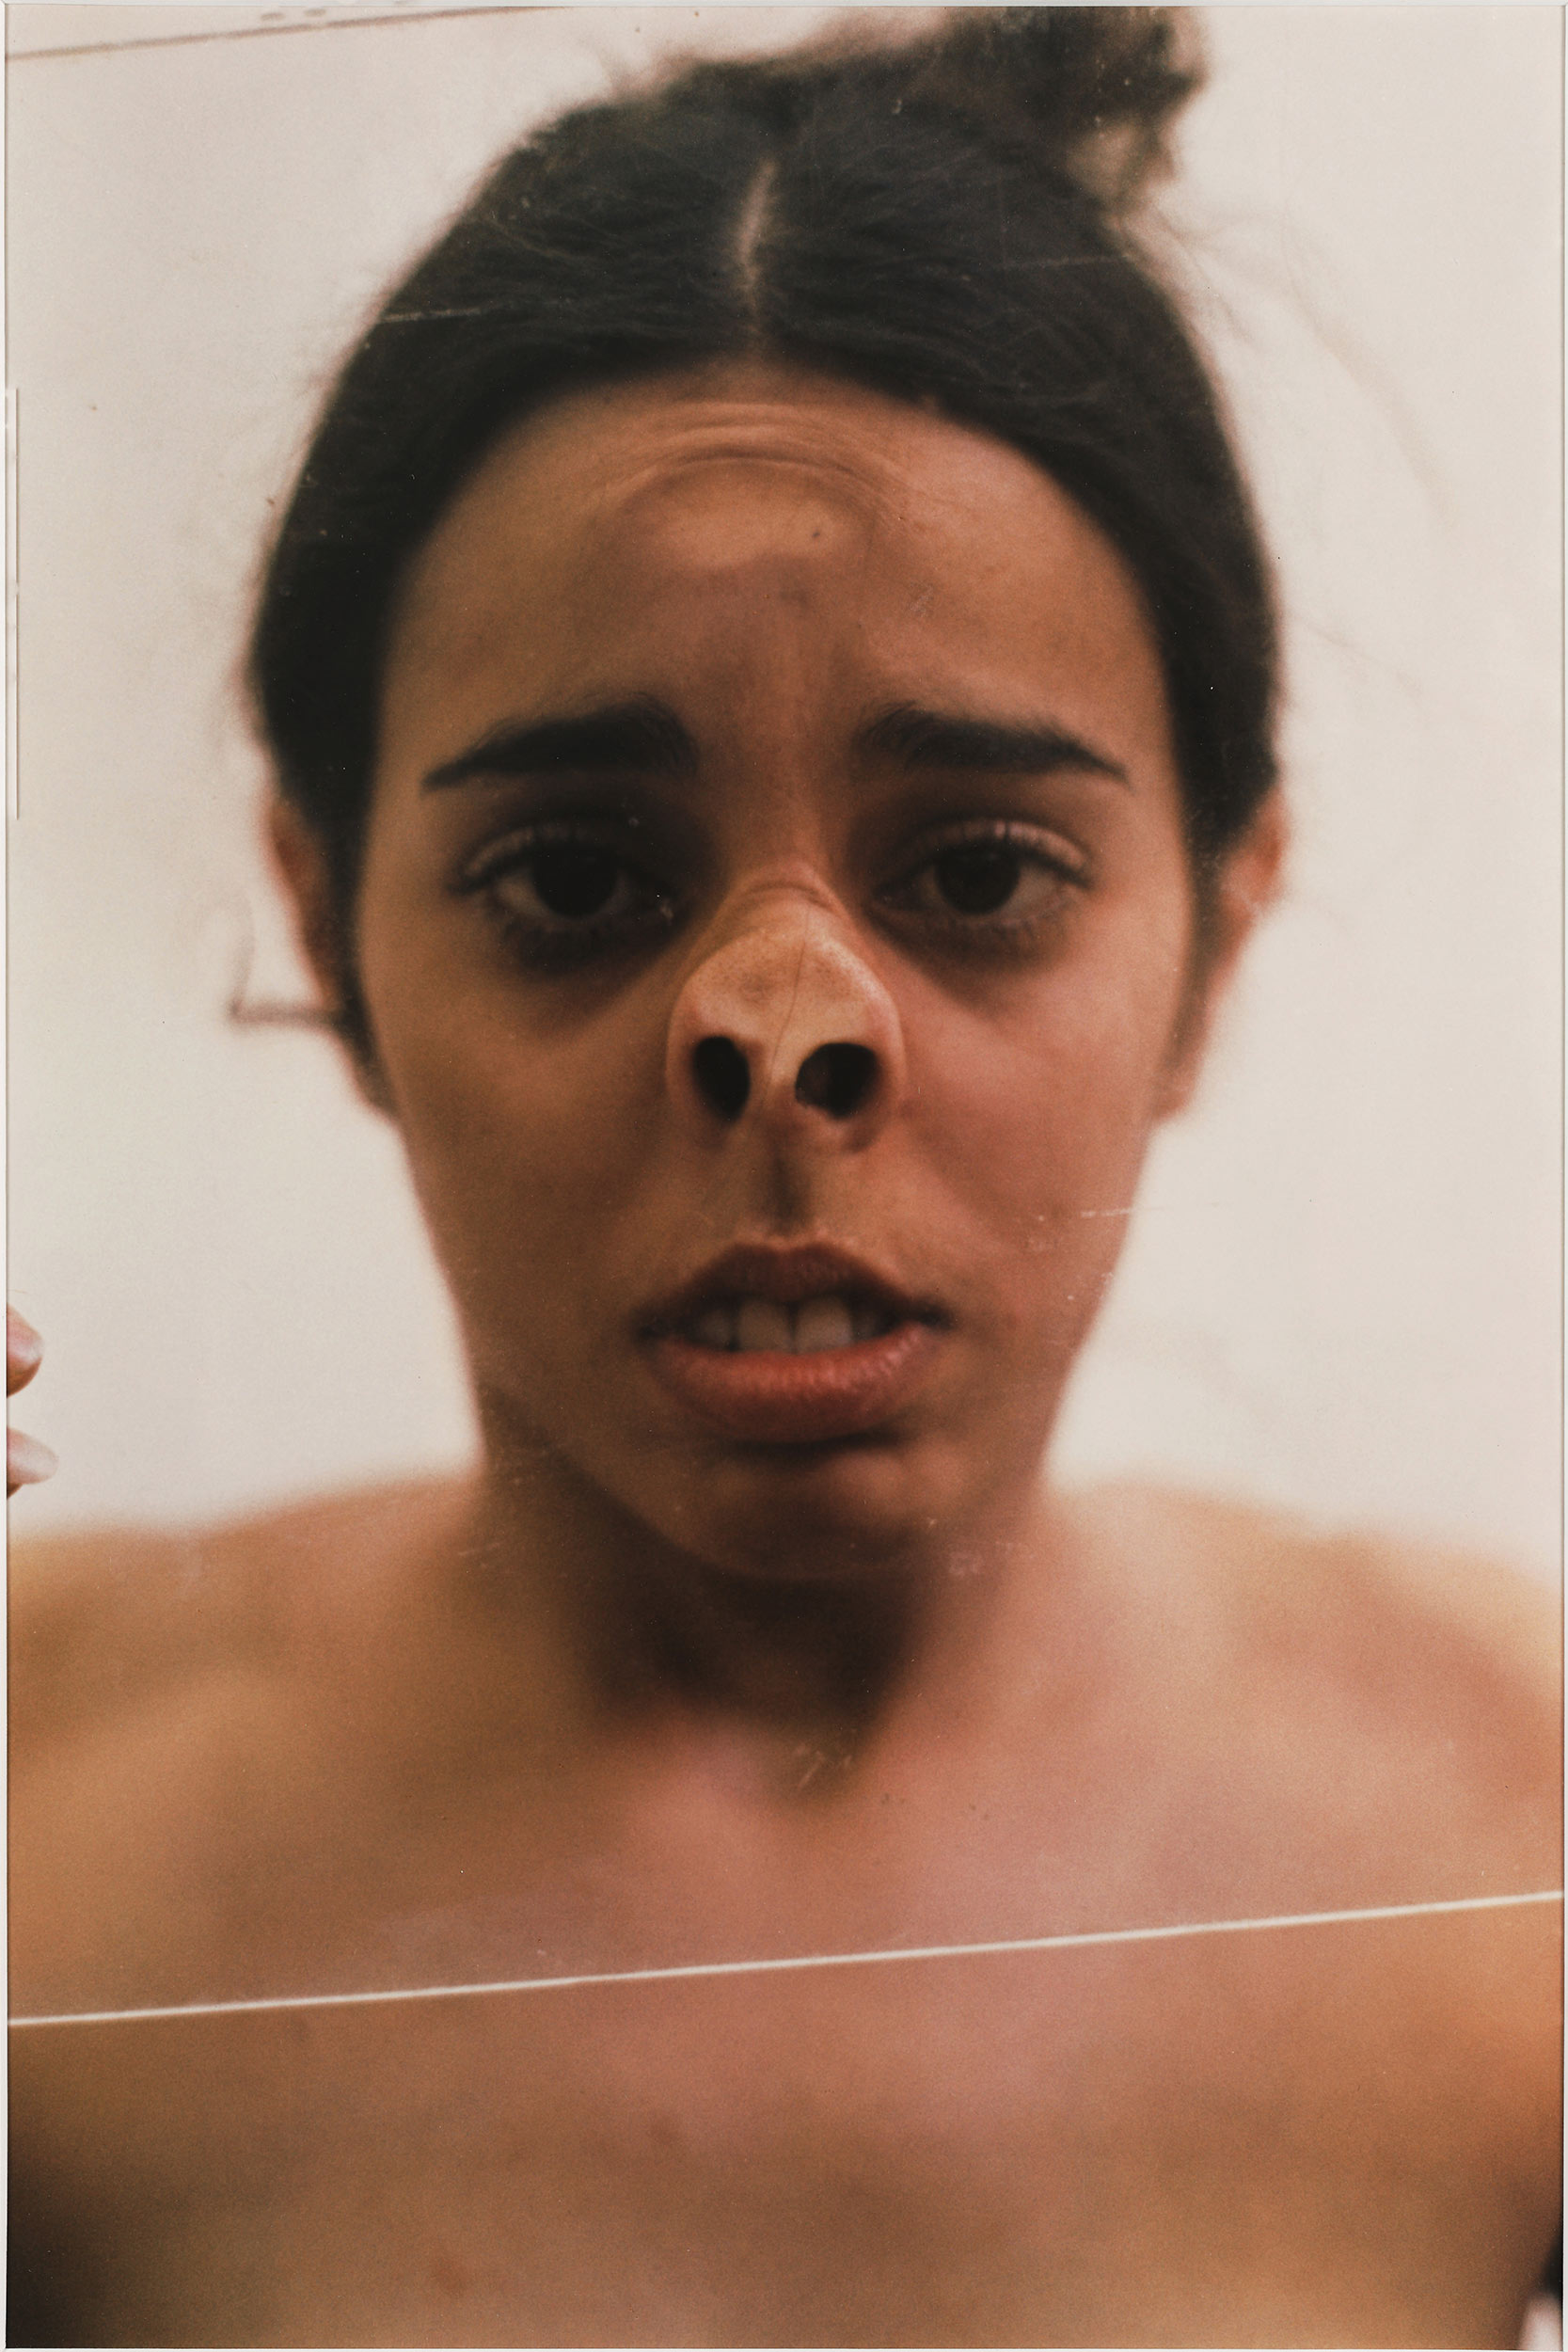 Ana Mendieta, Untitled (Glass on Face), 1972.